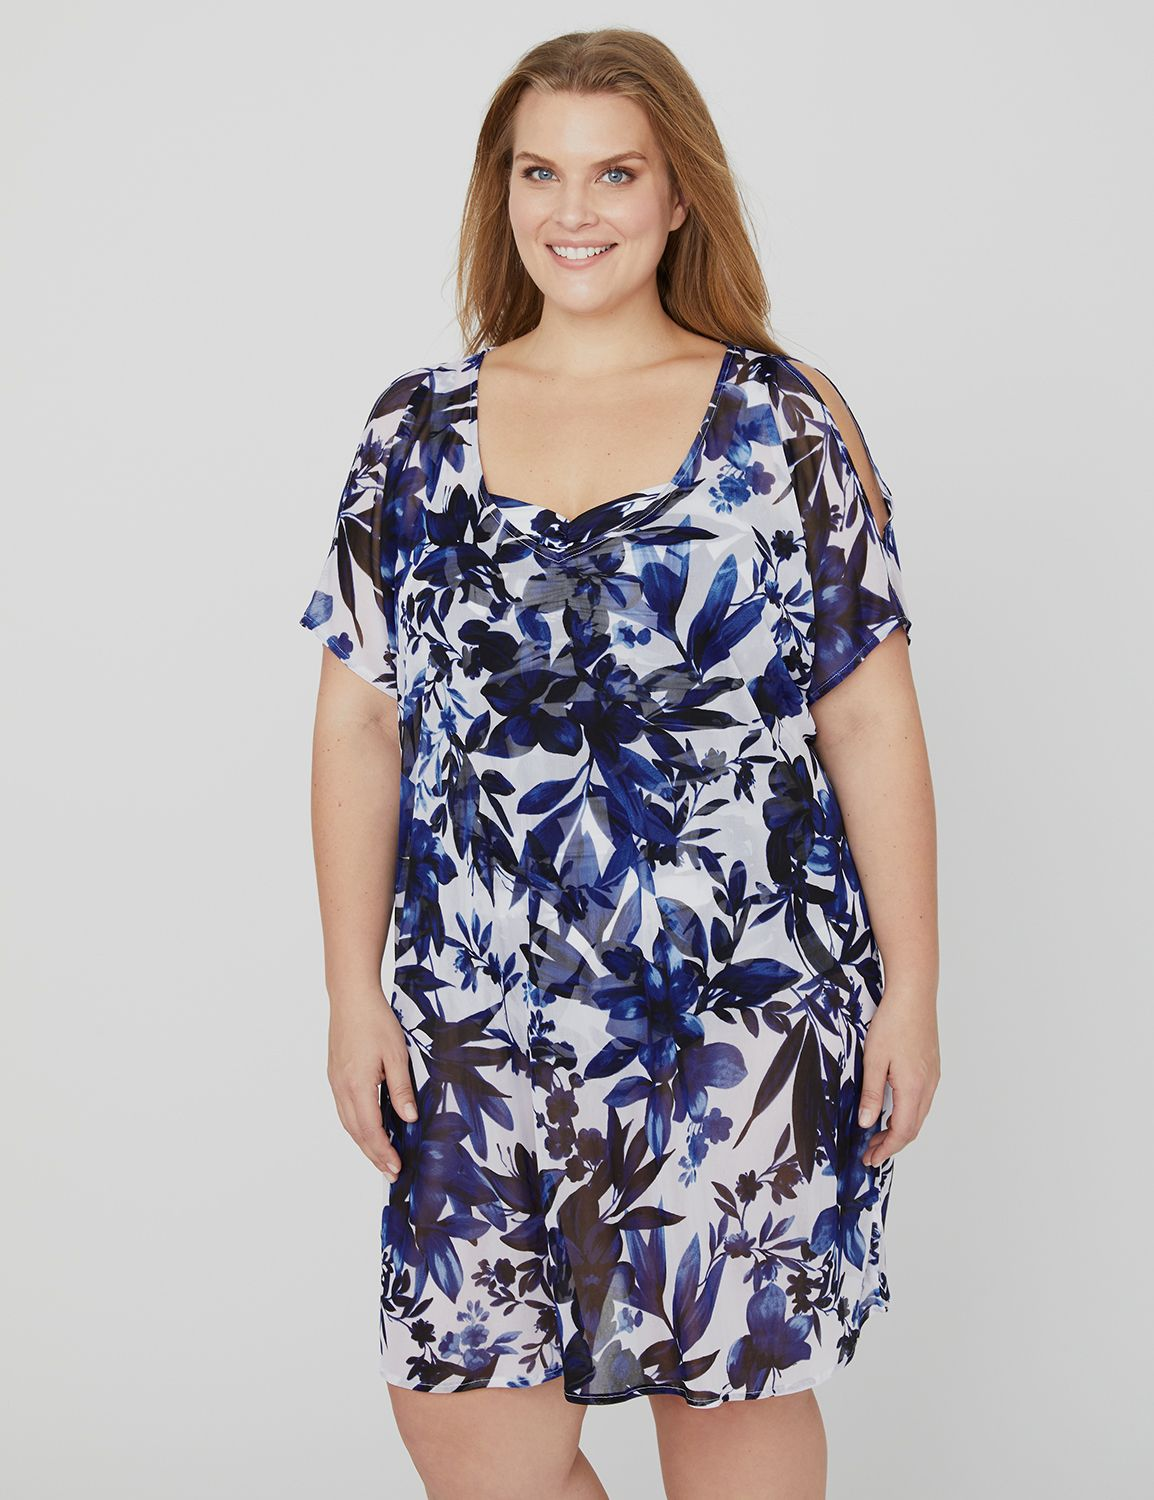 Lakeside Floral Sheer Cover-Up 1088510-Printed Mesh Cover-up MP-300096386